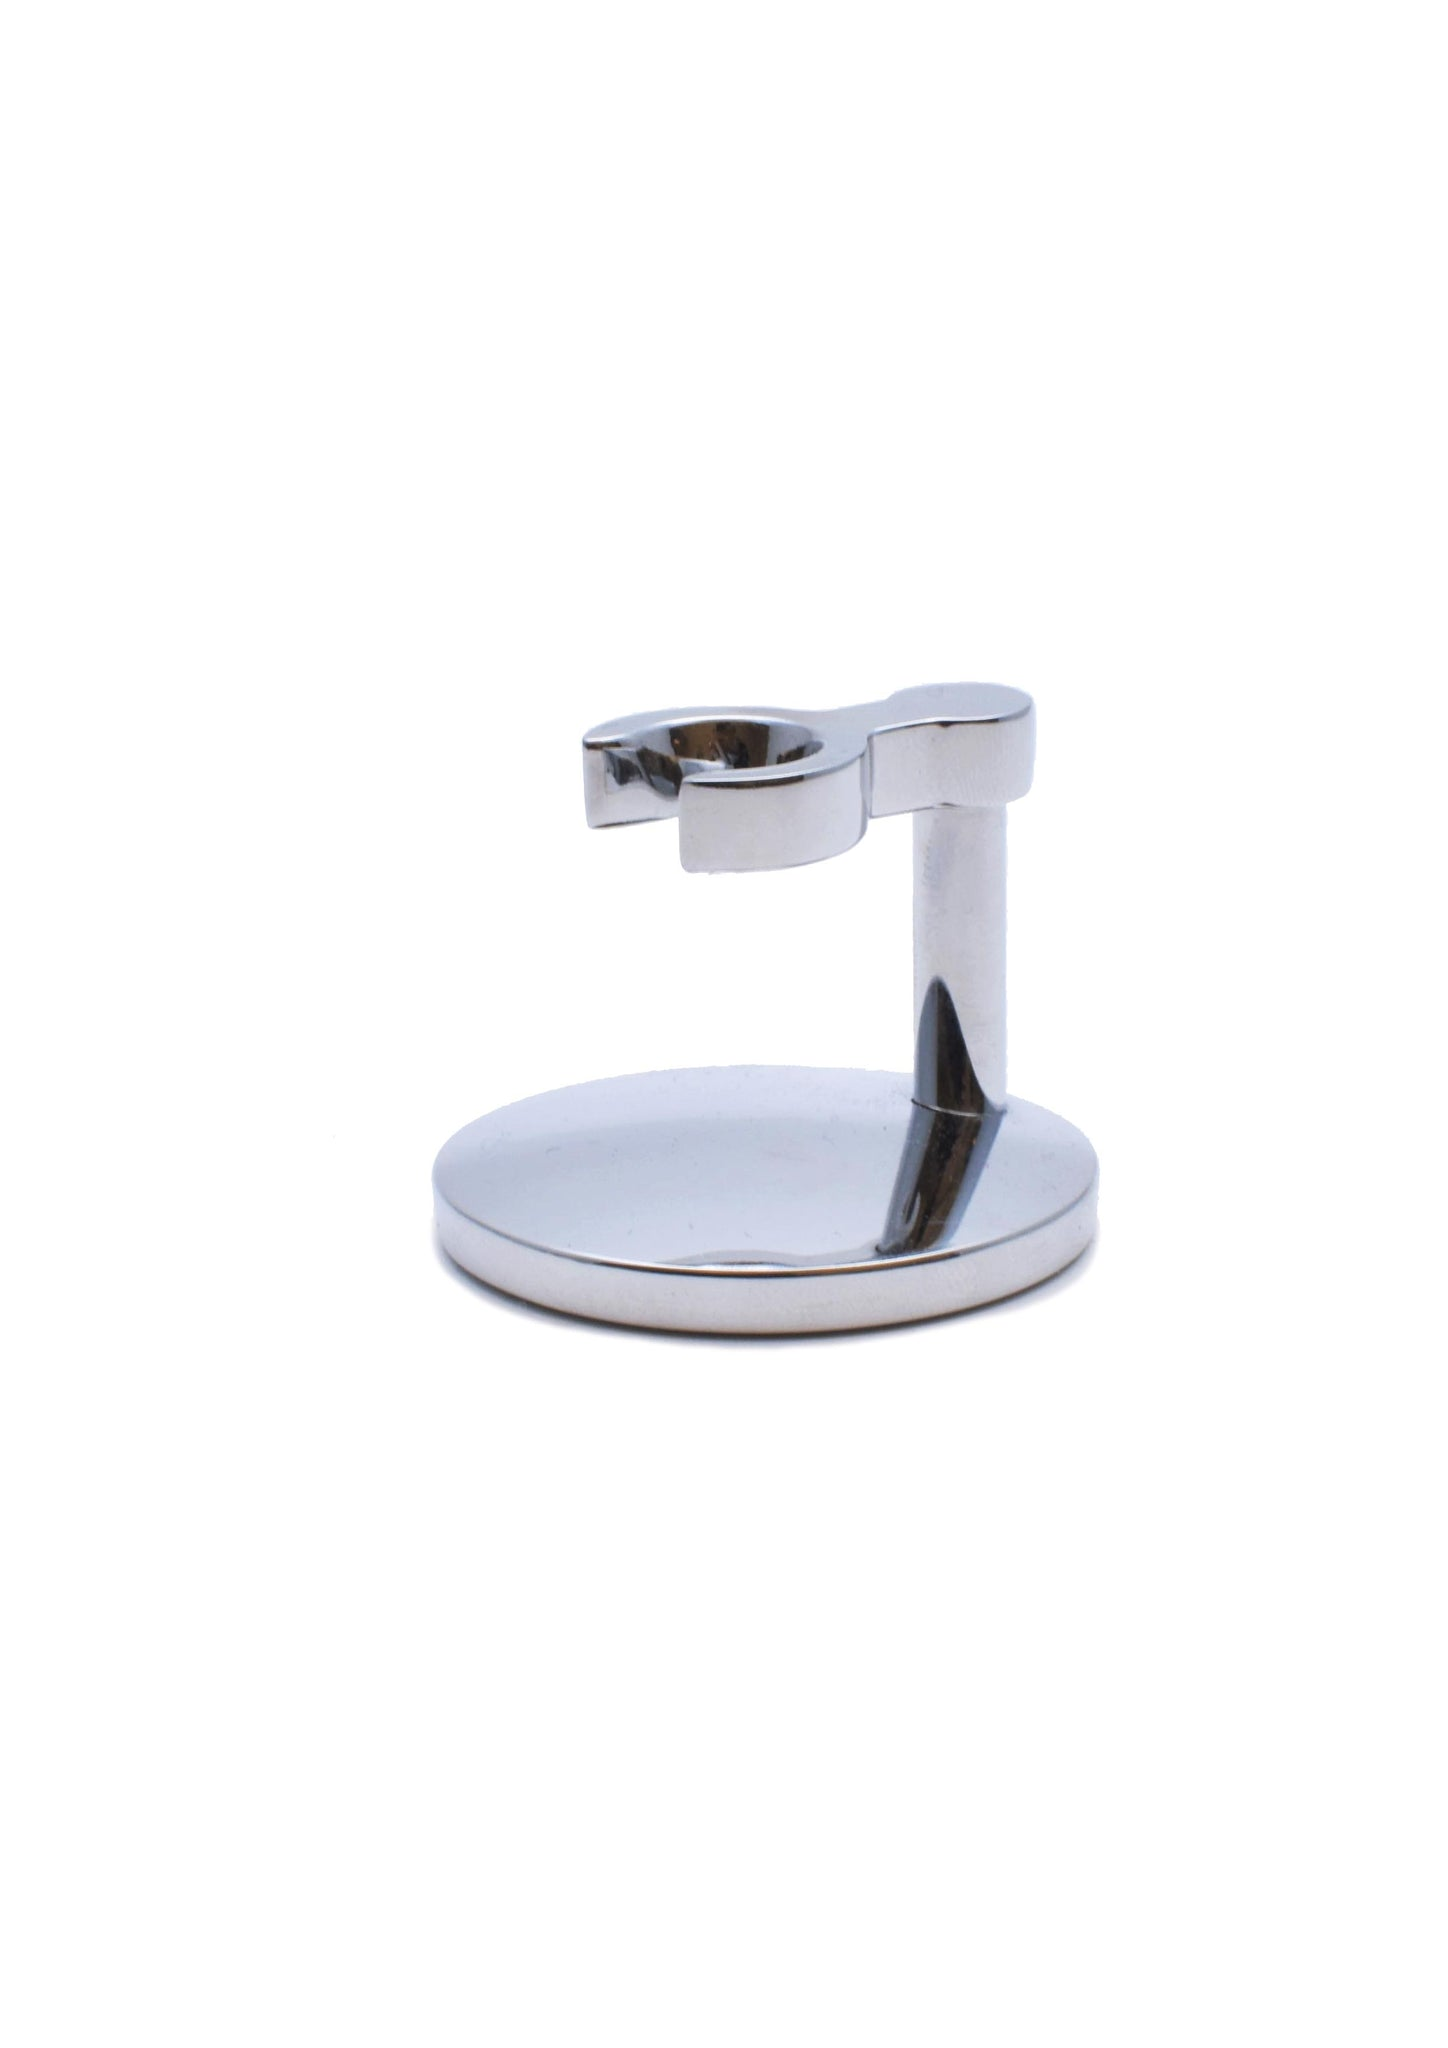 Muhle, CHROME STAND FOR TRADITIONAL SERIES SAFETY RAZORS RHMSR